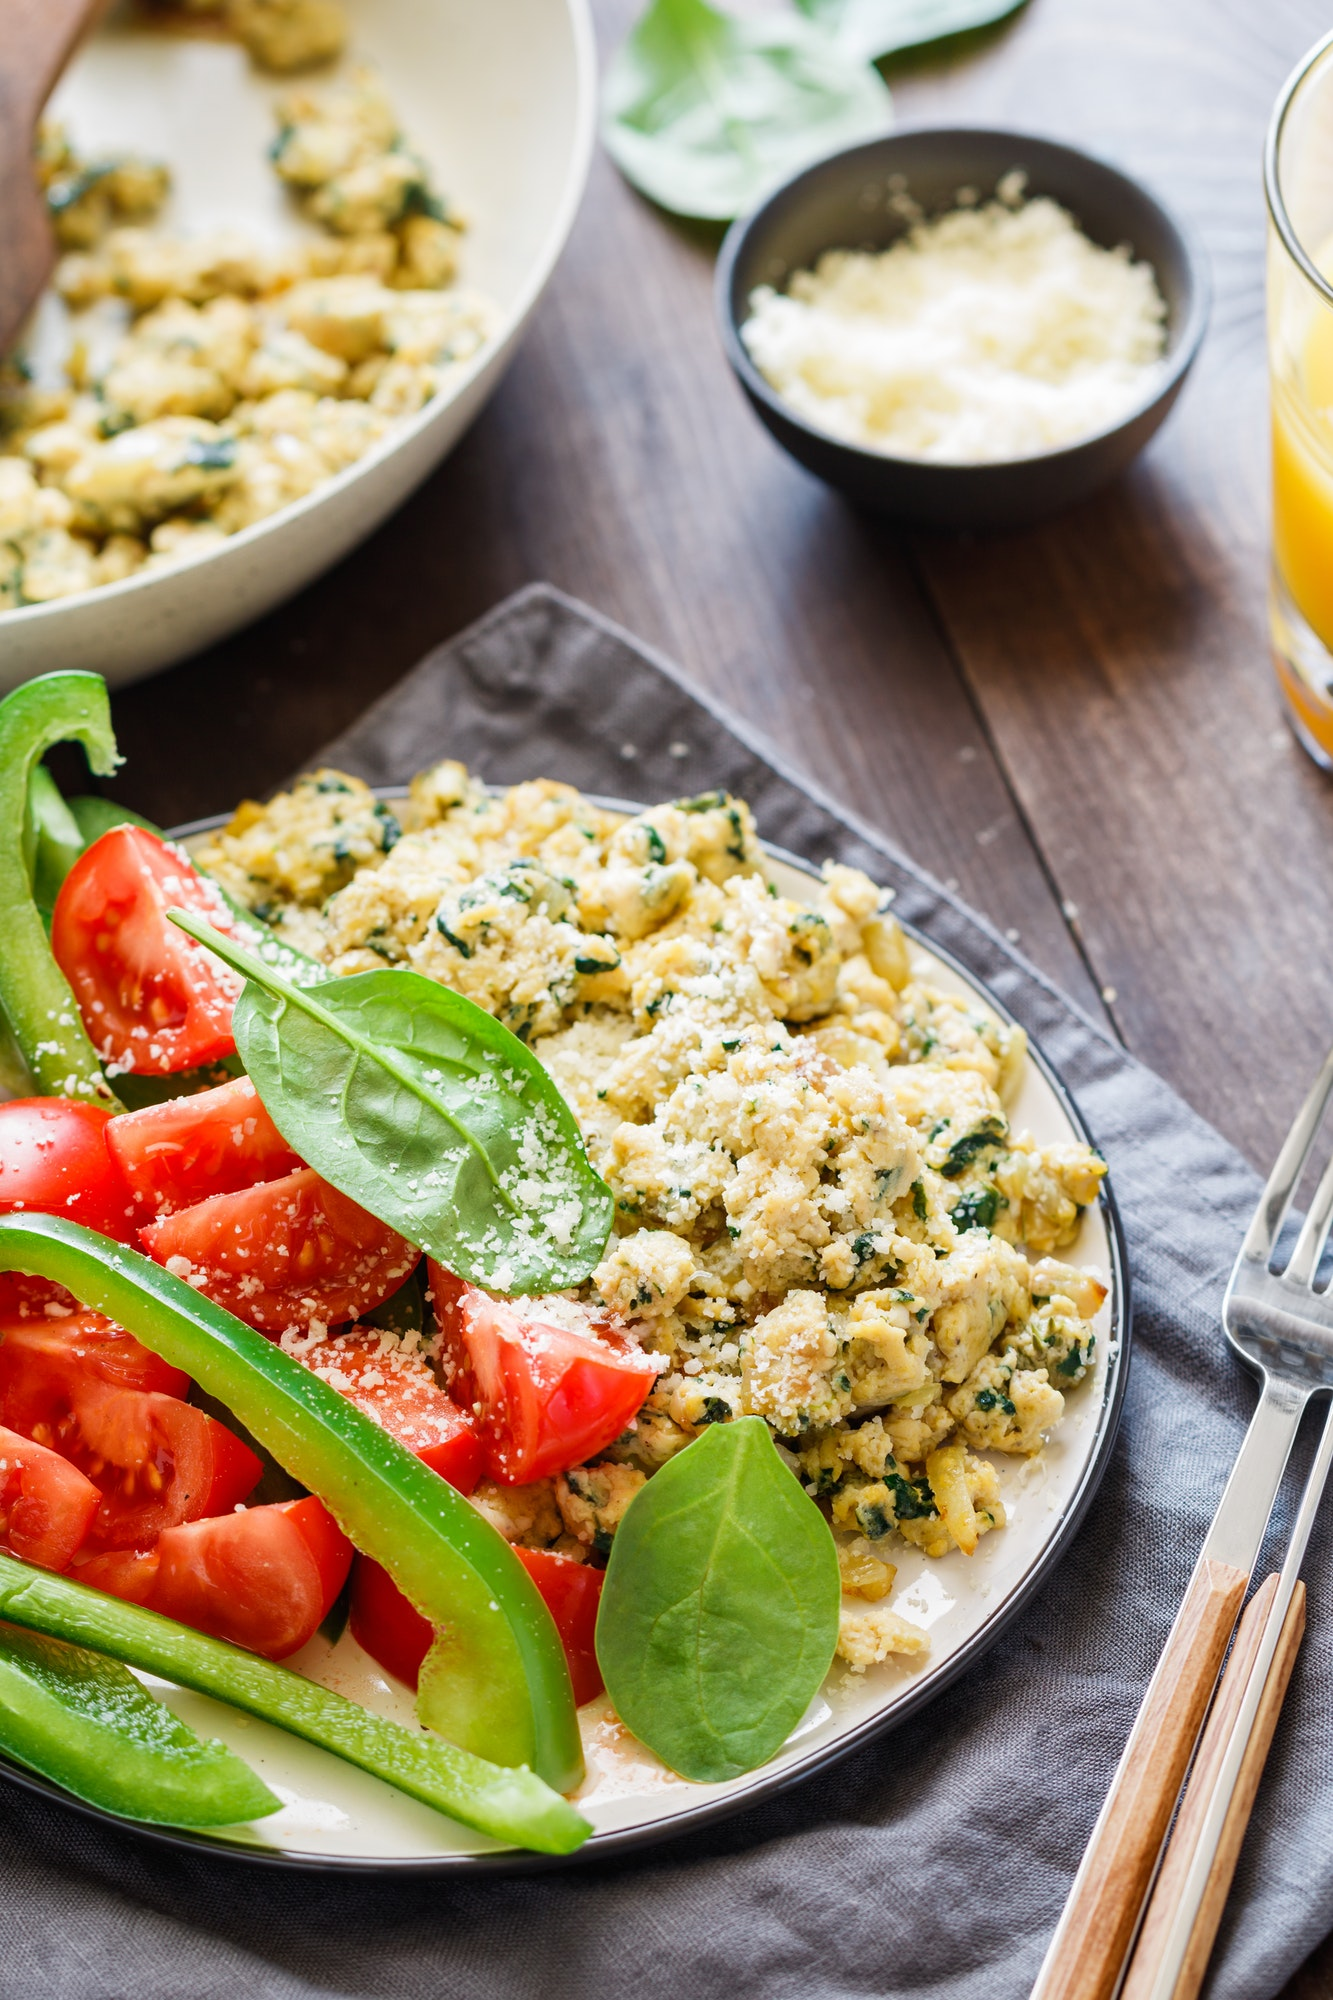 Breakfast table with a portion of spinach scrambled eggs